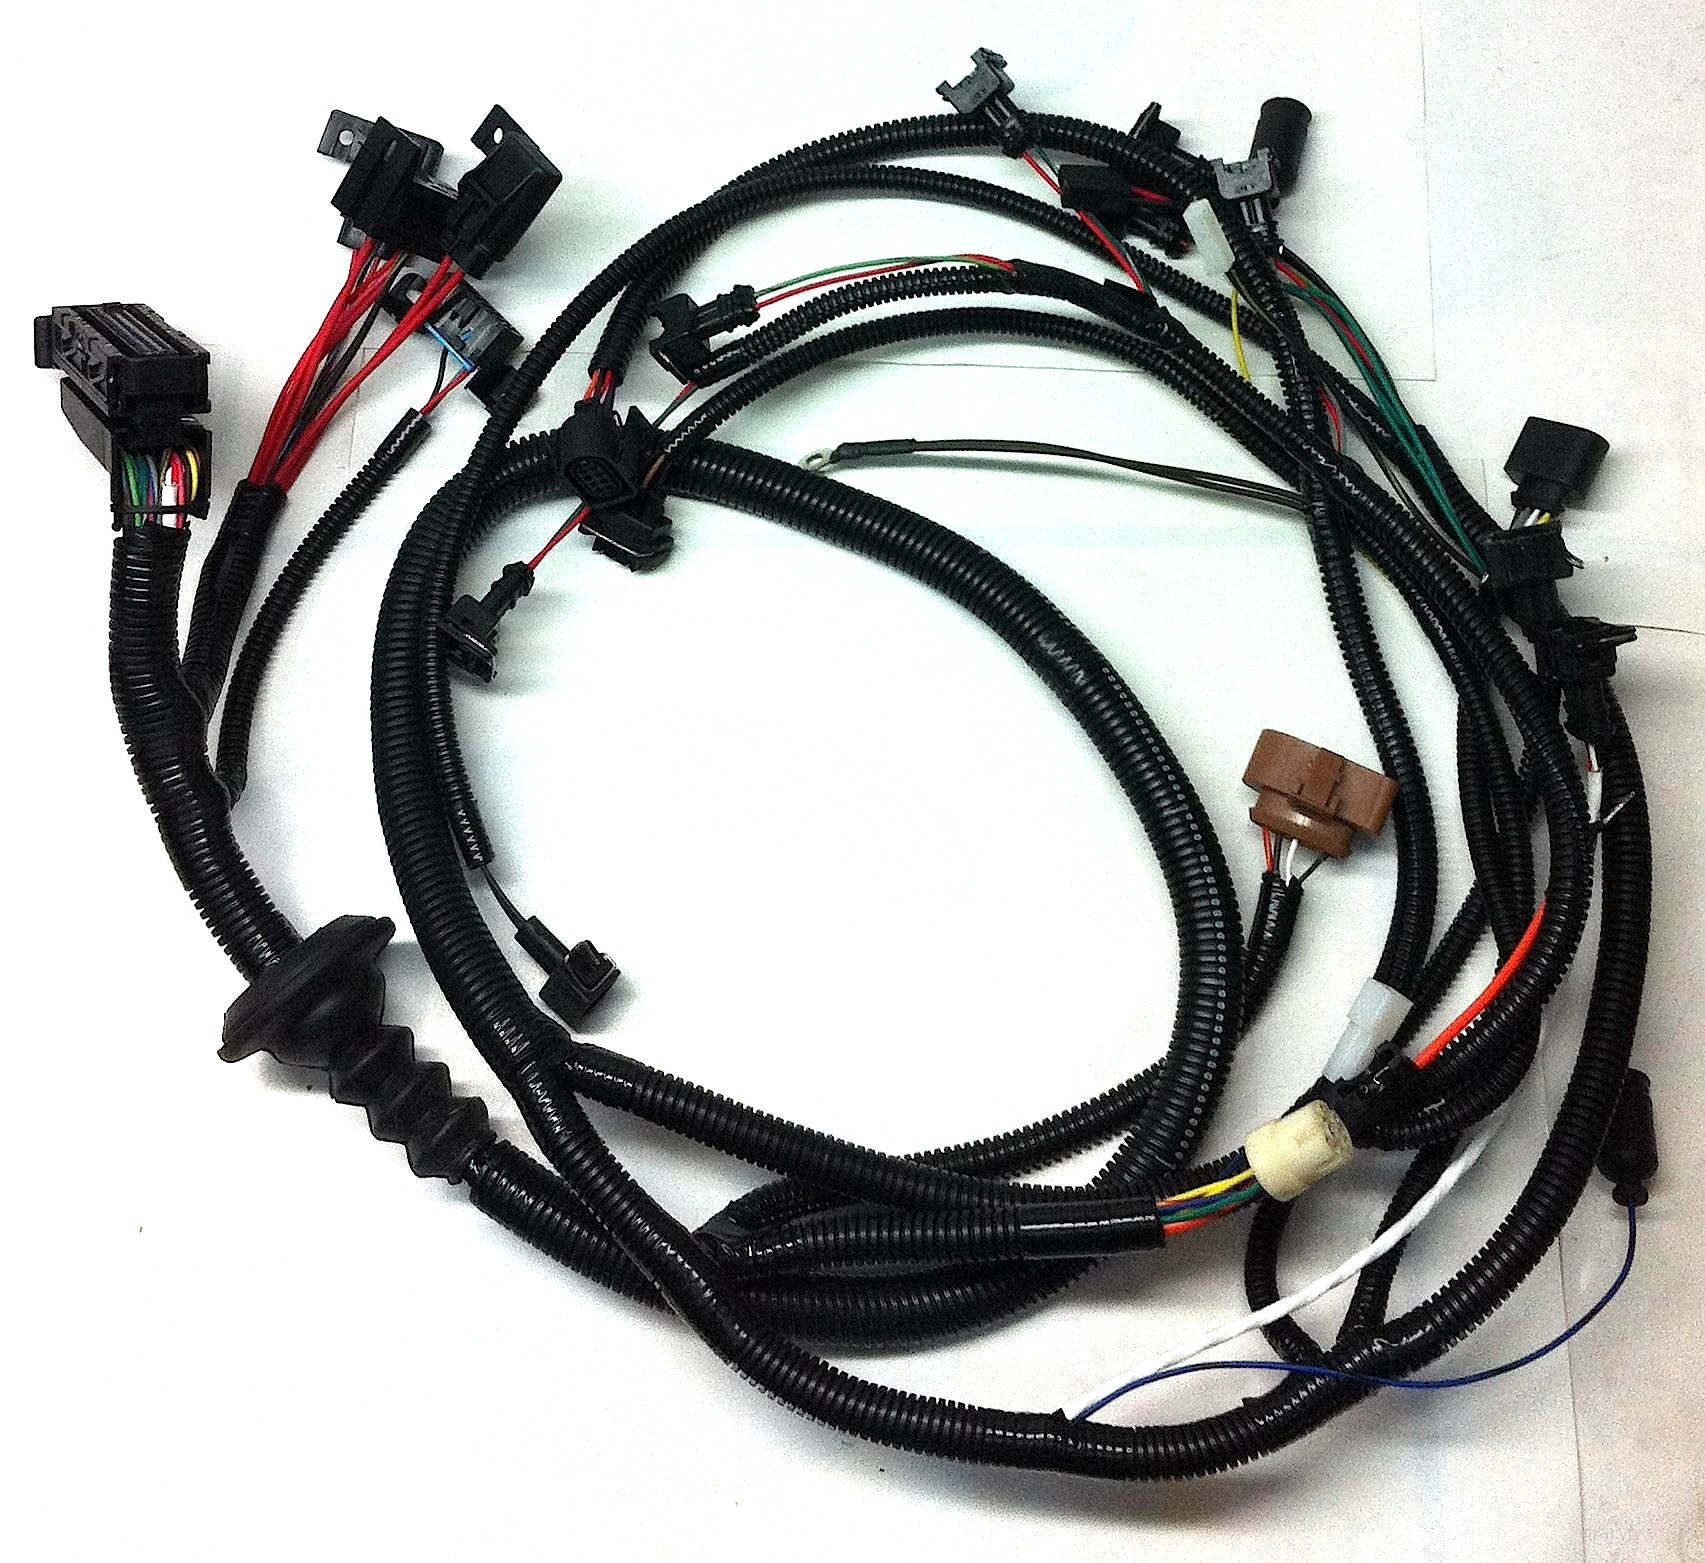 Wiring_Harness_2LR 2lr tiico conversion wiring harness foreign auto & supply, inc wiring harness diagram at gsmx.co